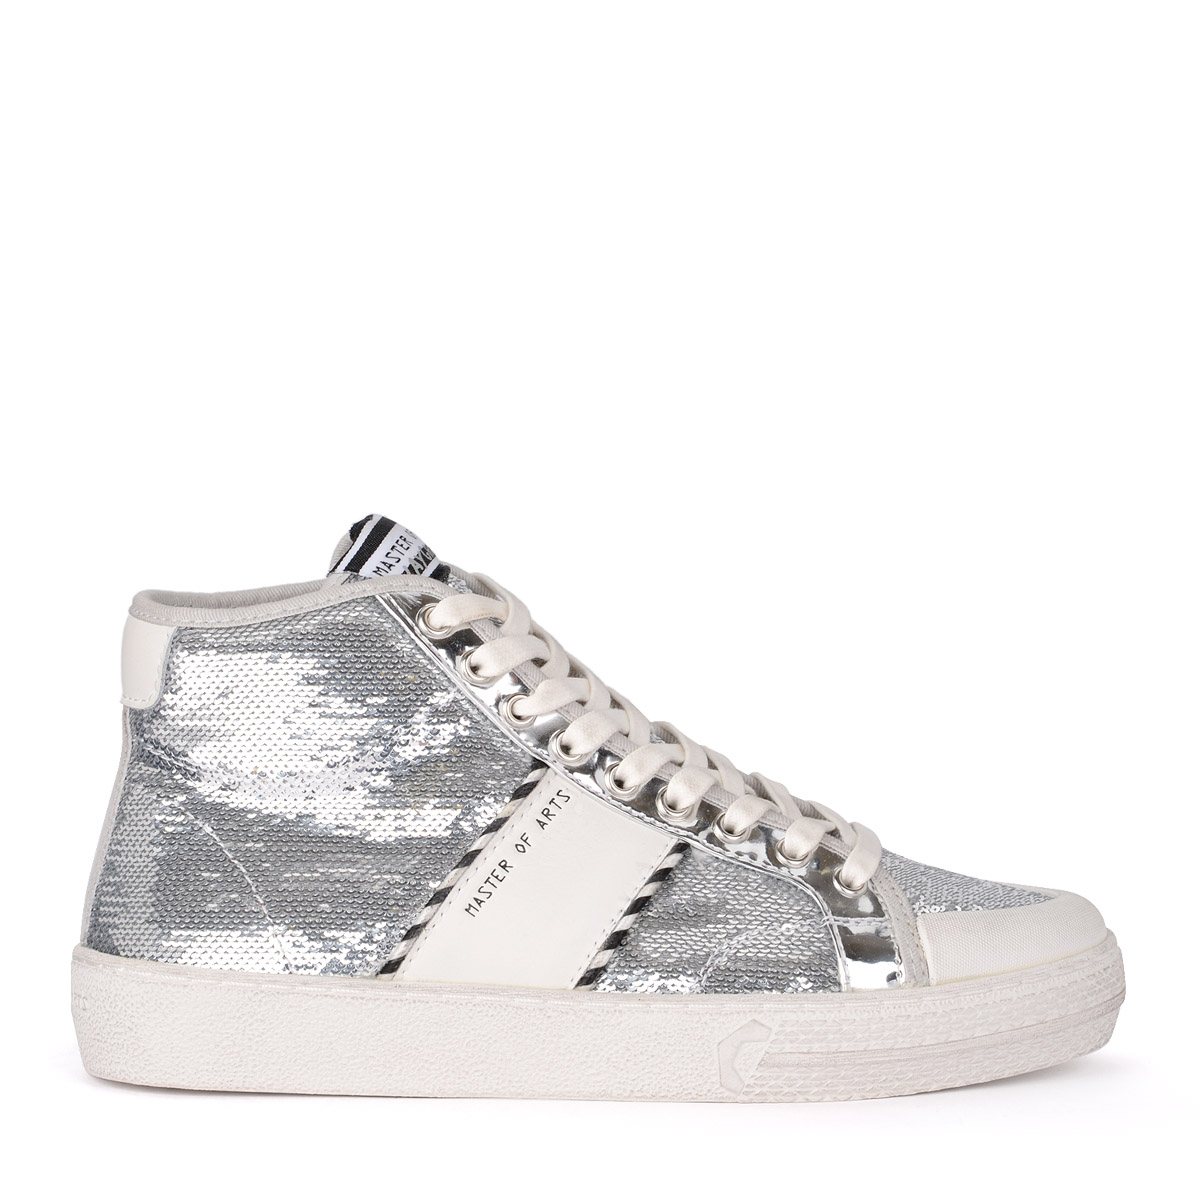 Sneaker high MOA Sequins Silver and White Leather